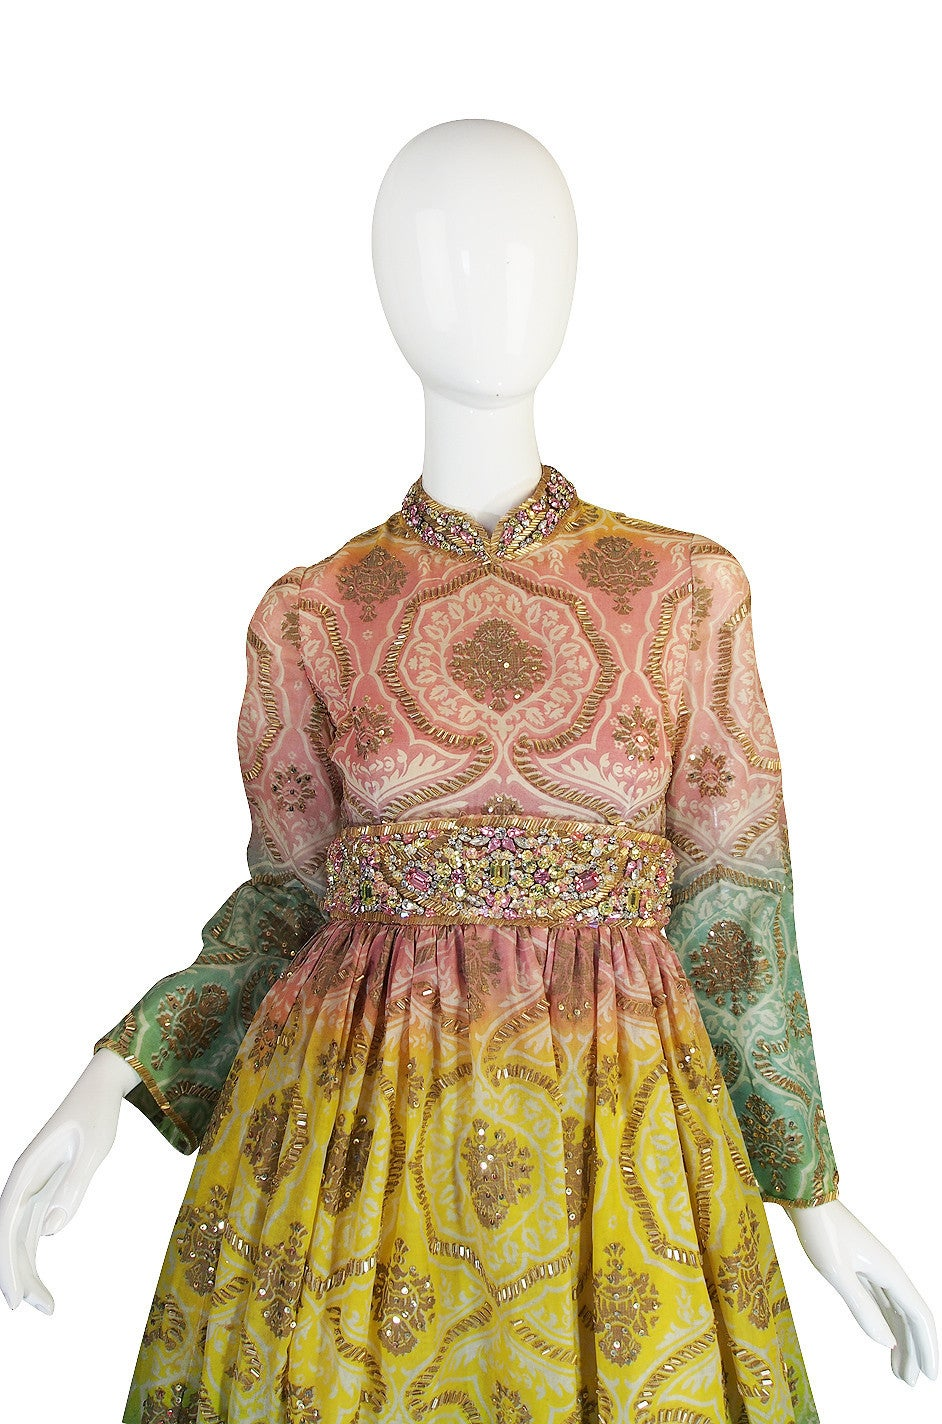 1960s George Halley Silk & Jewel Gypsy Gown In Good Condition For Sale In Toronto, ON